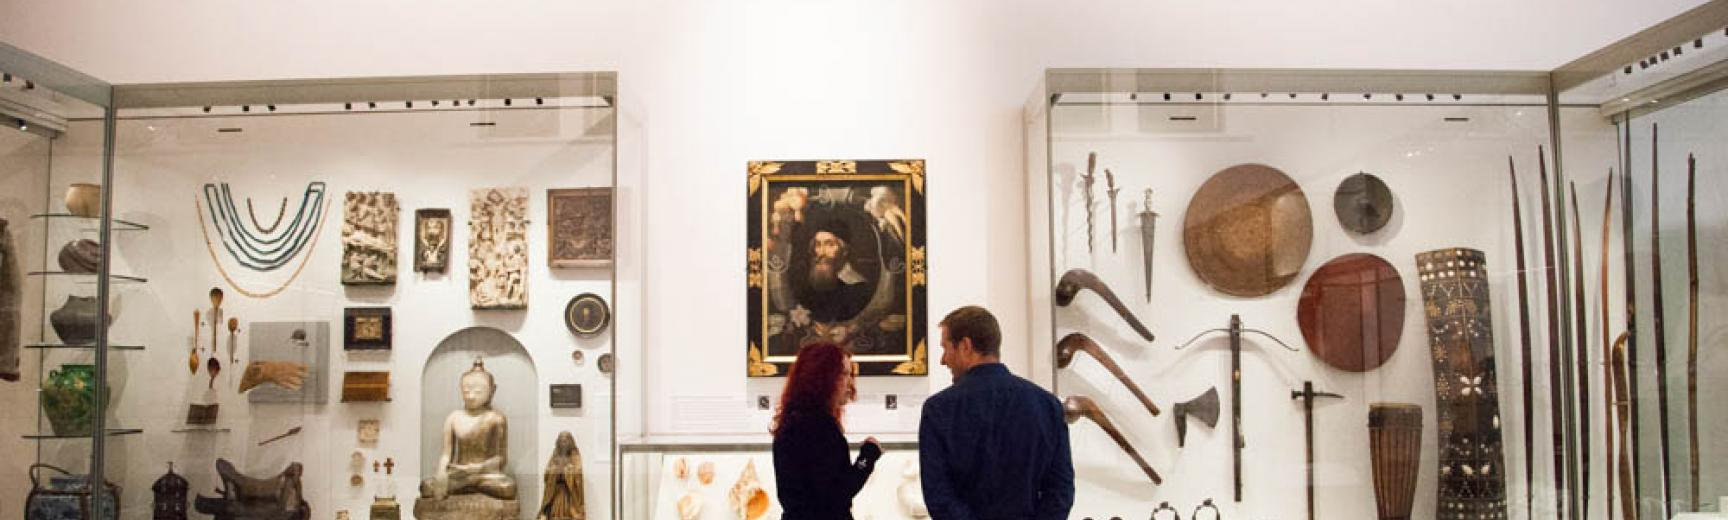 Ashmolean Museum Gallery 2 – The Ashmolean Story